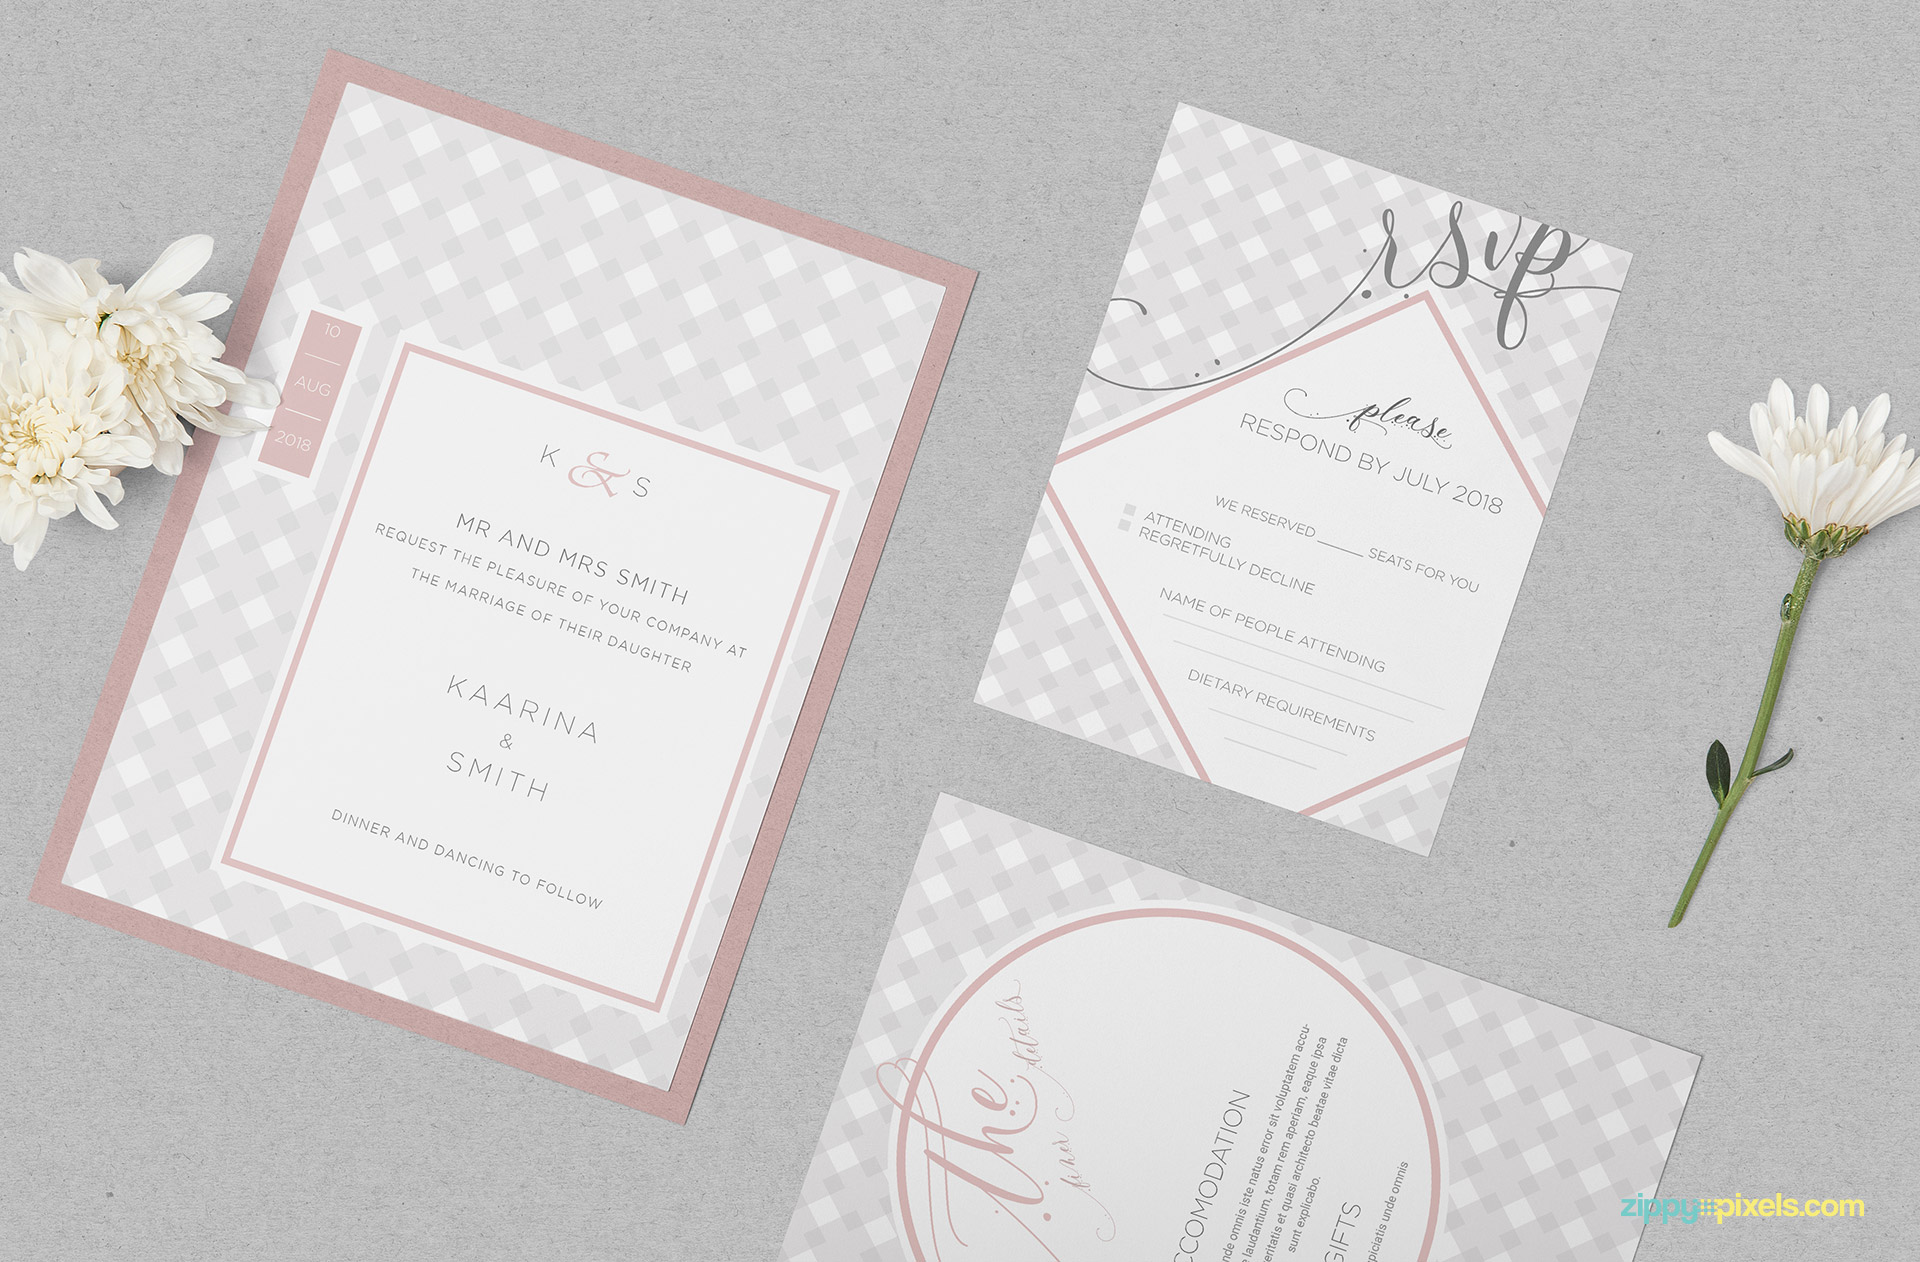 Wedding Invitation Card PSD Mockup Download Free DesignHooks